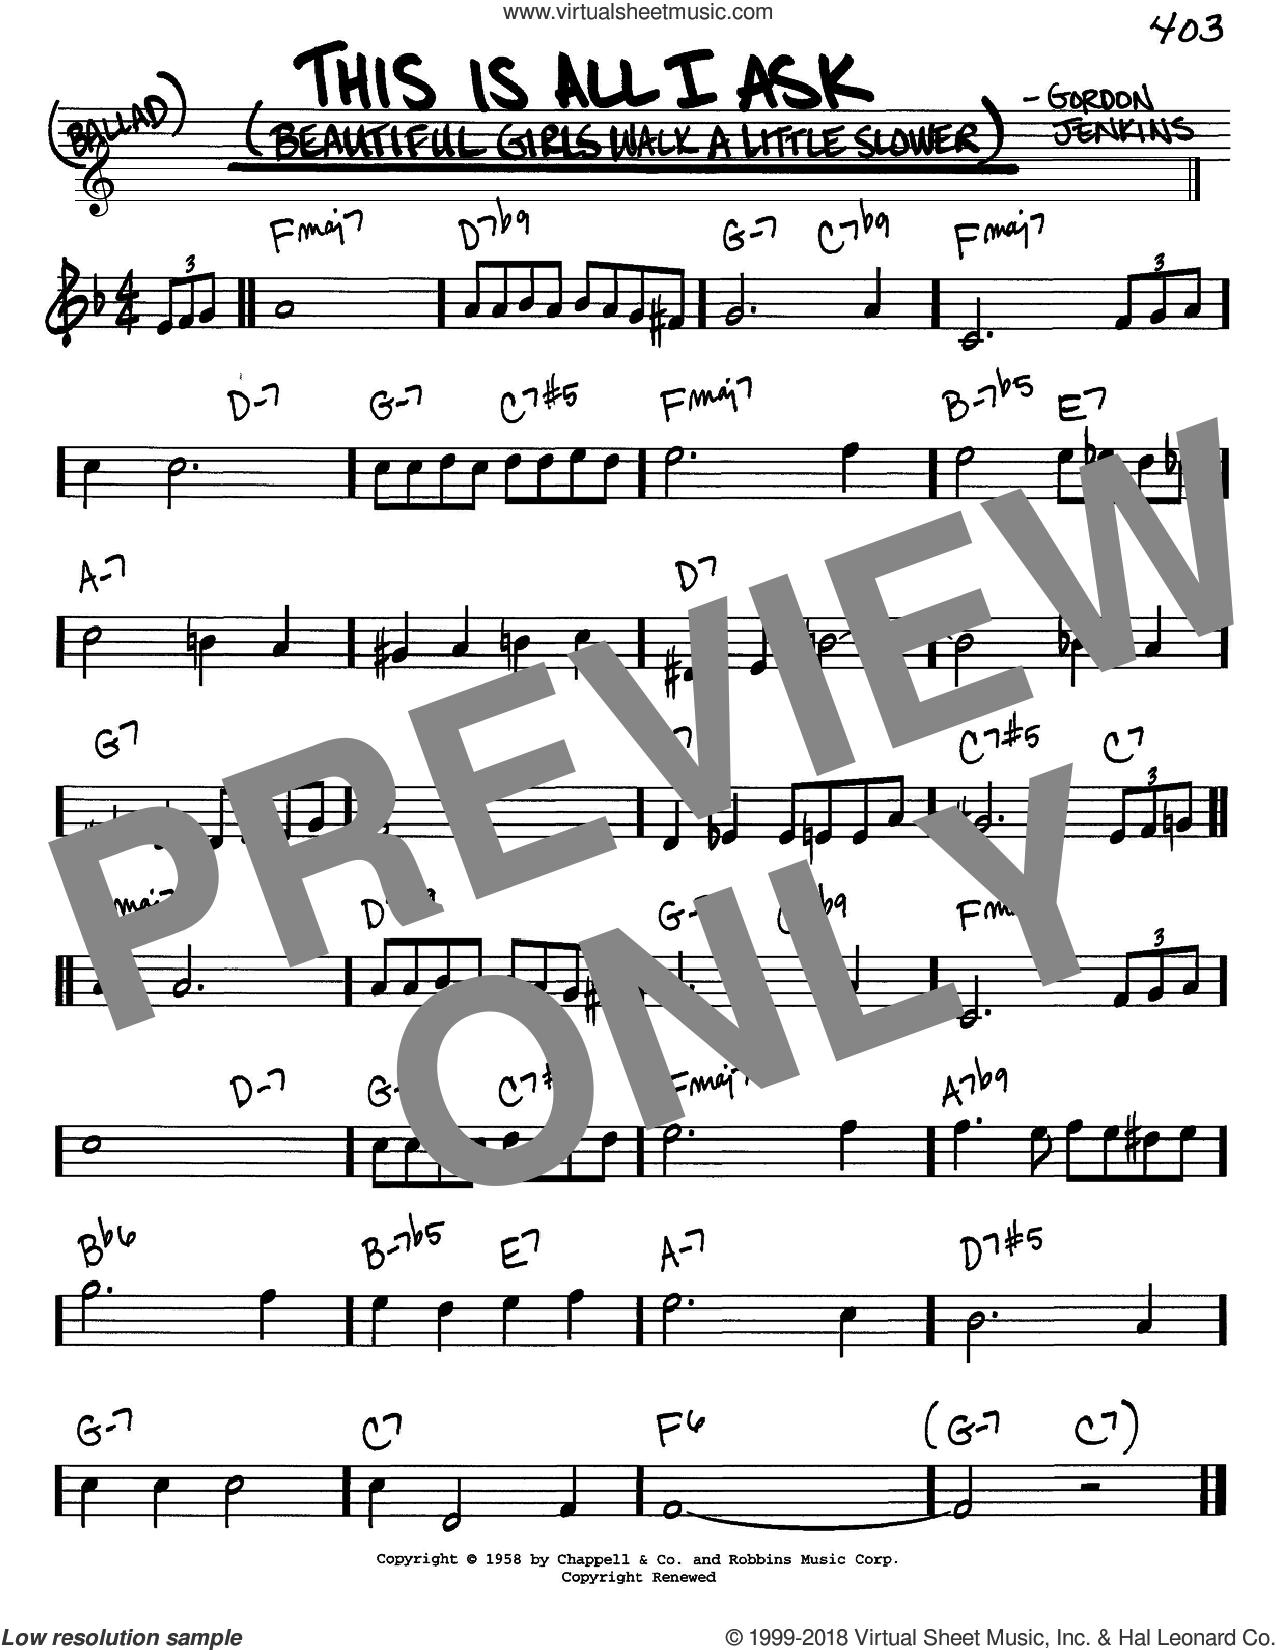 This Is All I Ask (Beautiful Girls Walk A Little Slower) sheet music for voice and other instruments (C) by Gordon Jenkins